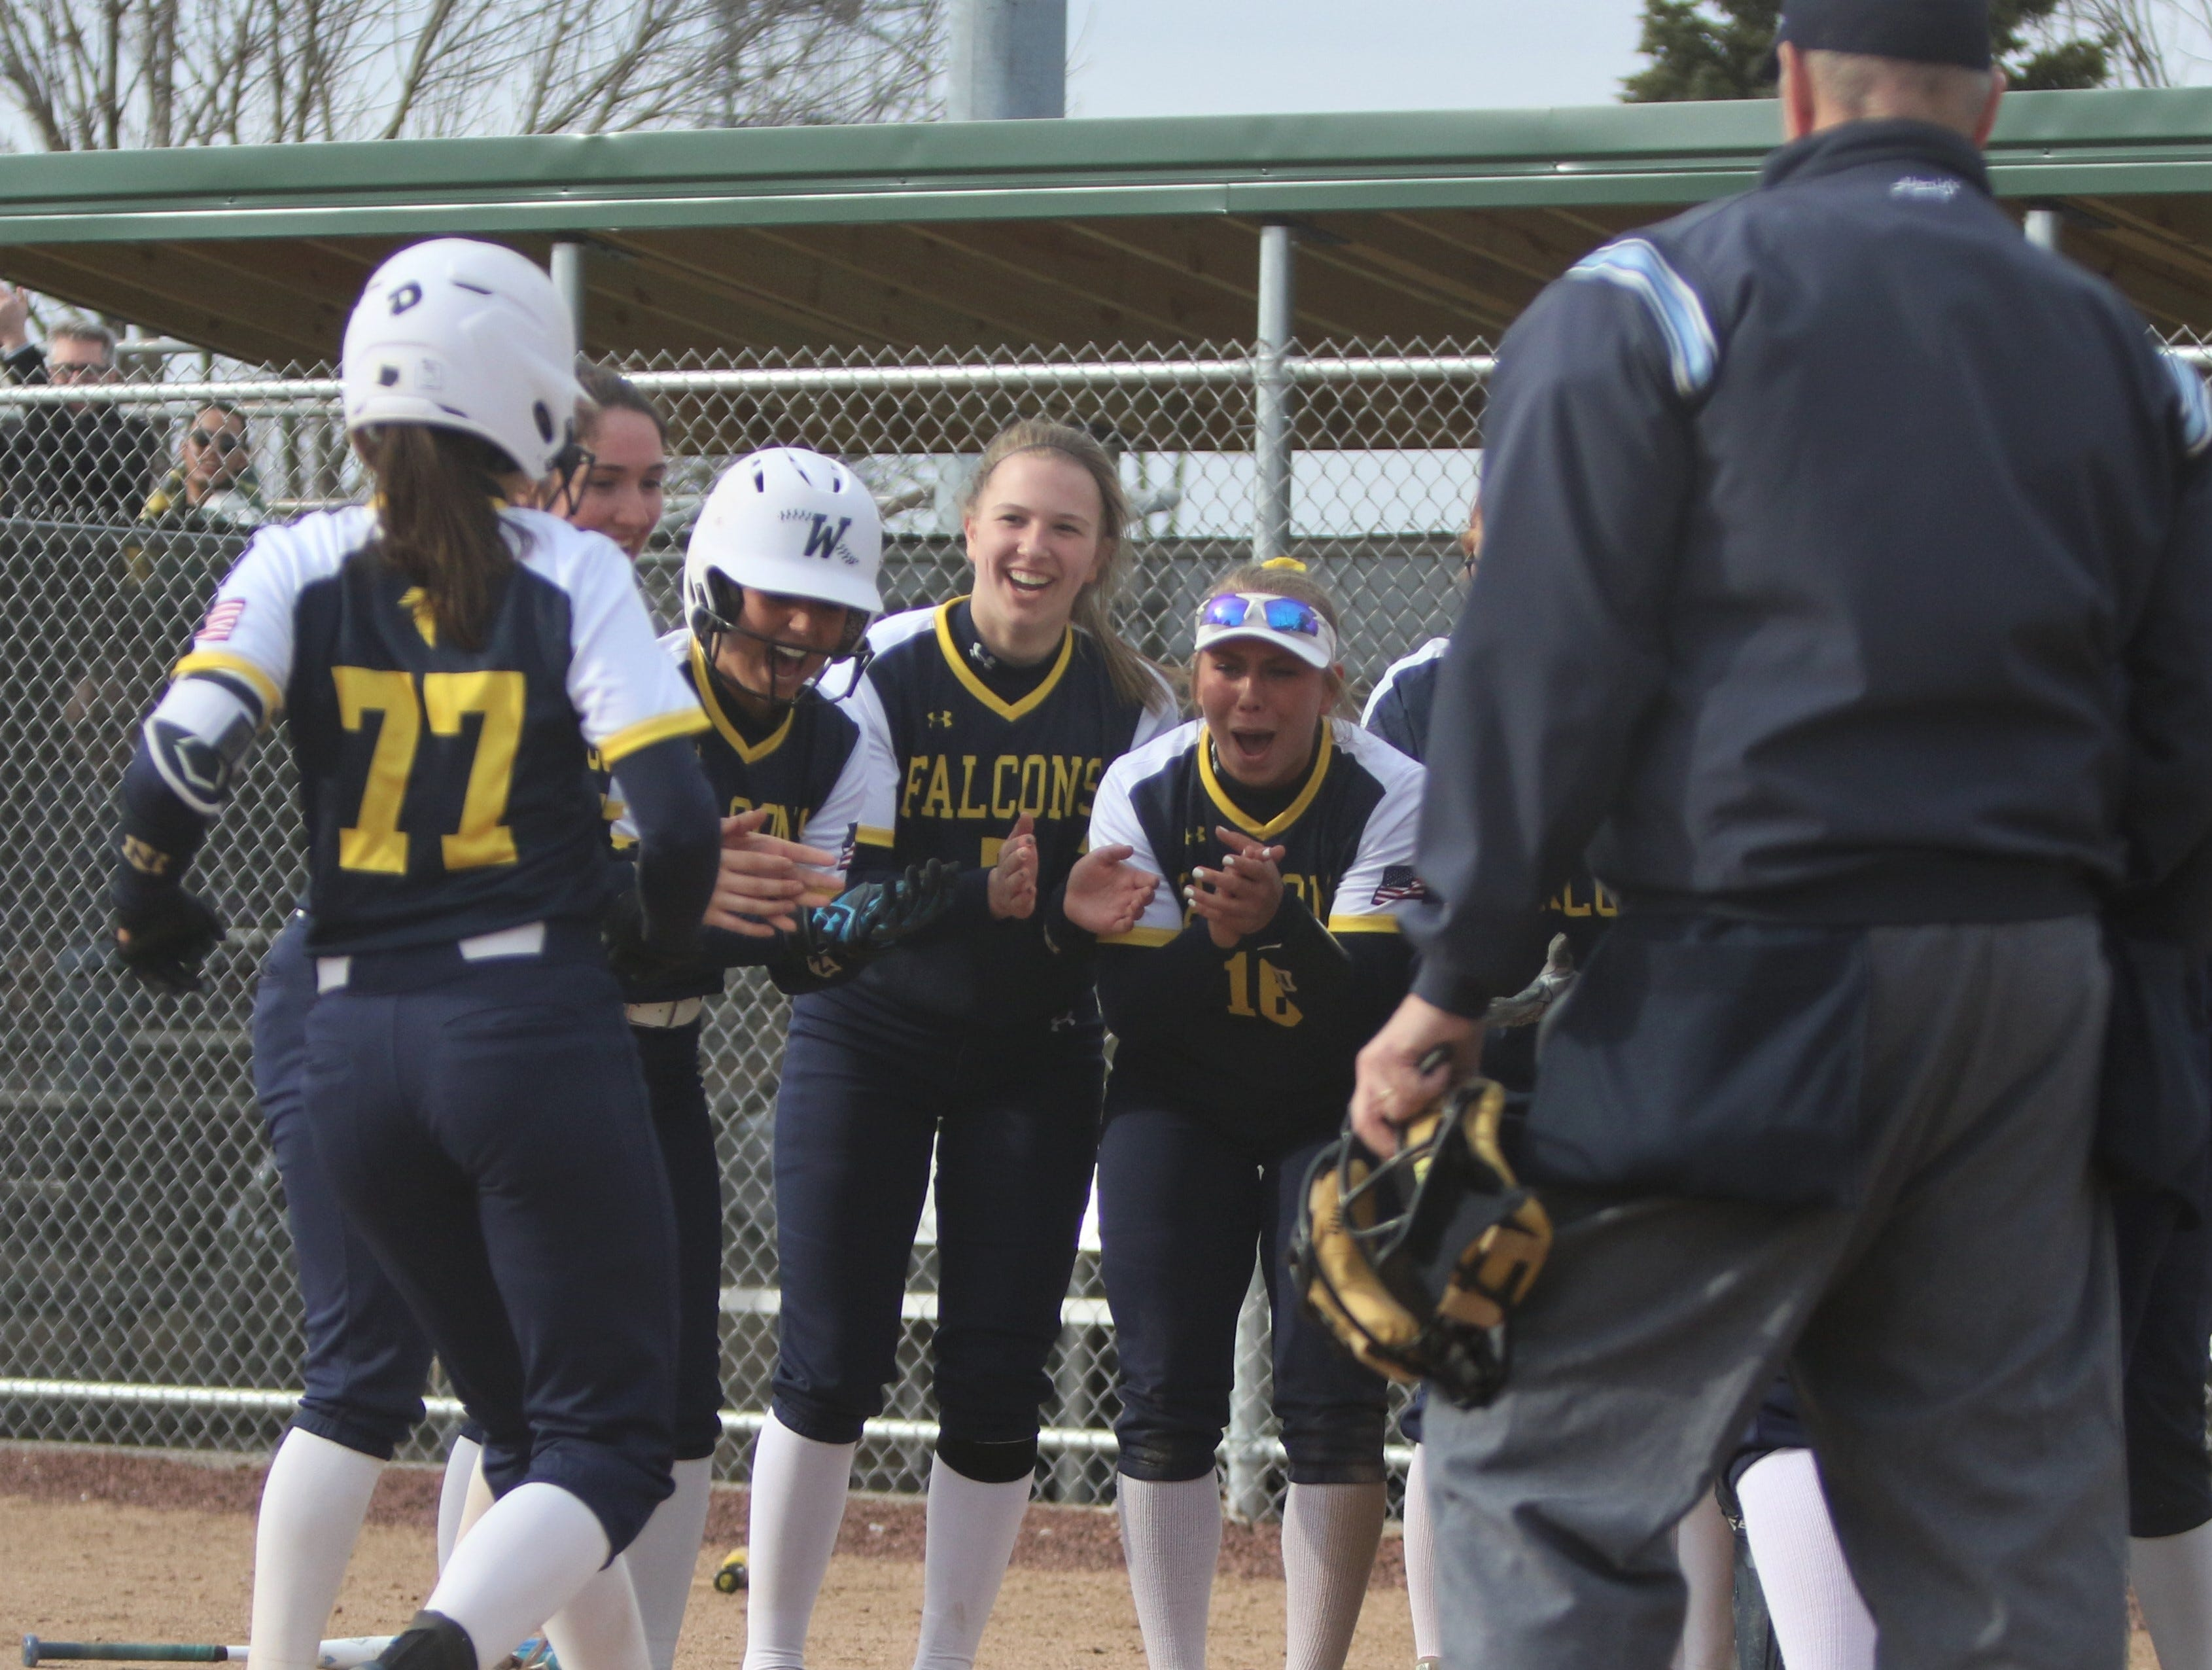 Whitnall players await Jesicca Vallier at home plate after Vallier's home run against Greenfield on April 3, 2019.